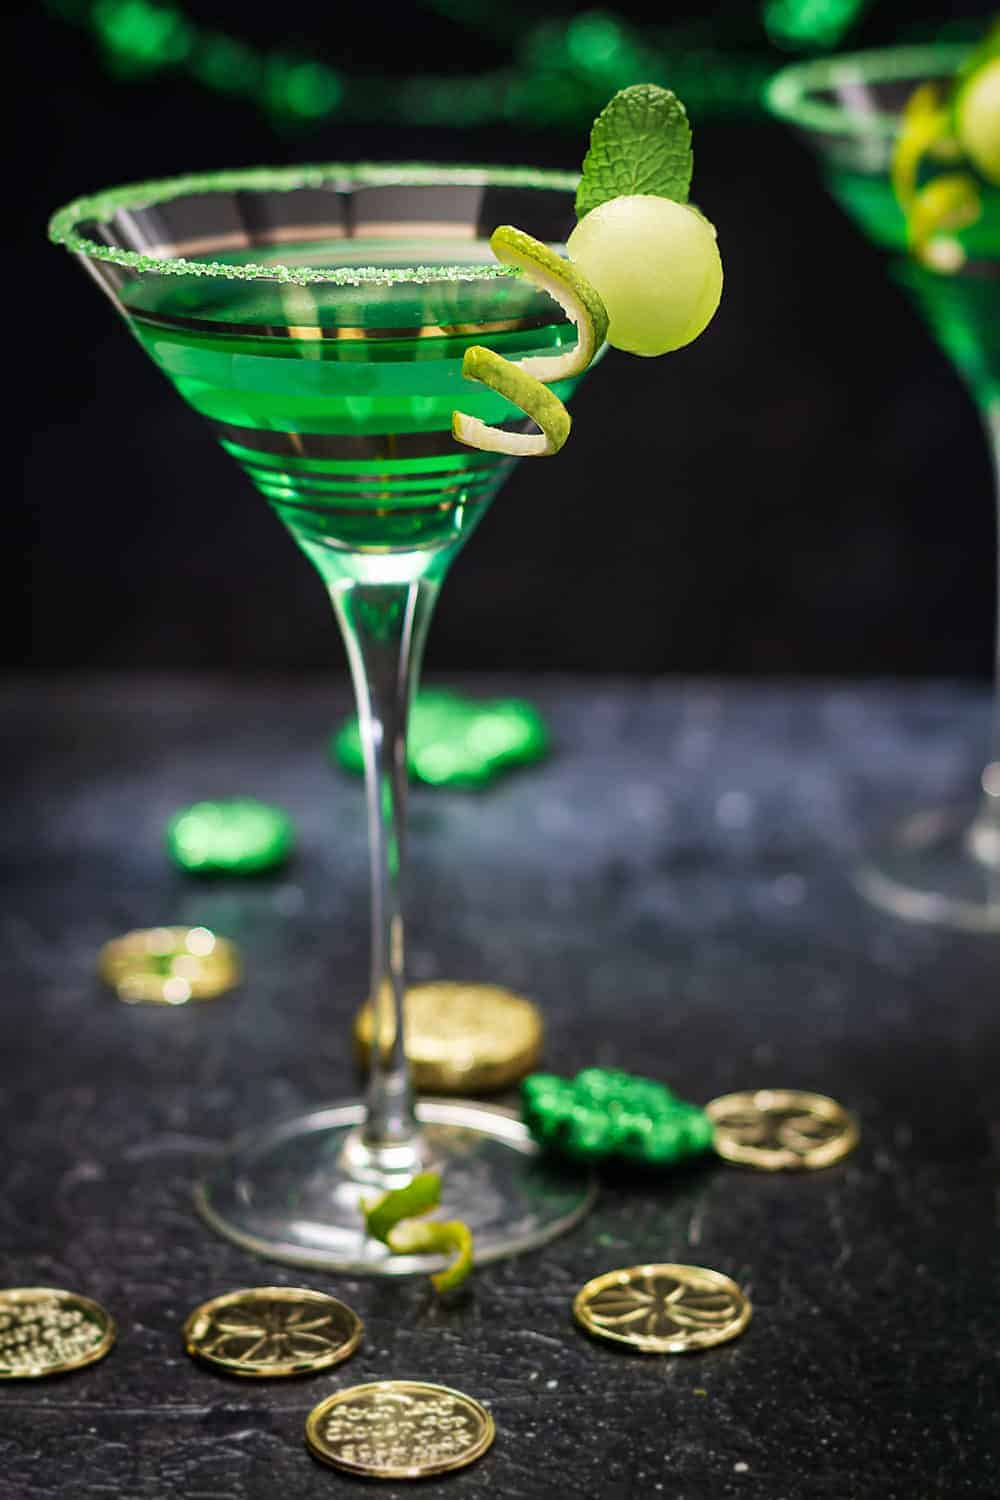 One martini glass with green martini on a black table with Irish decorations.